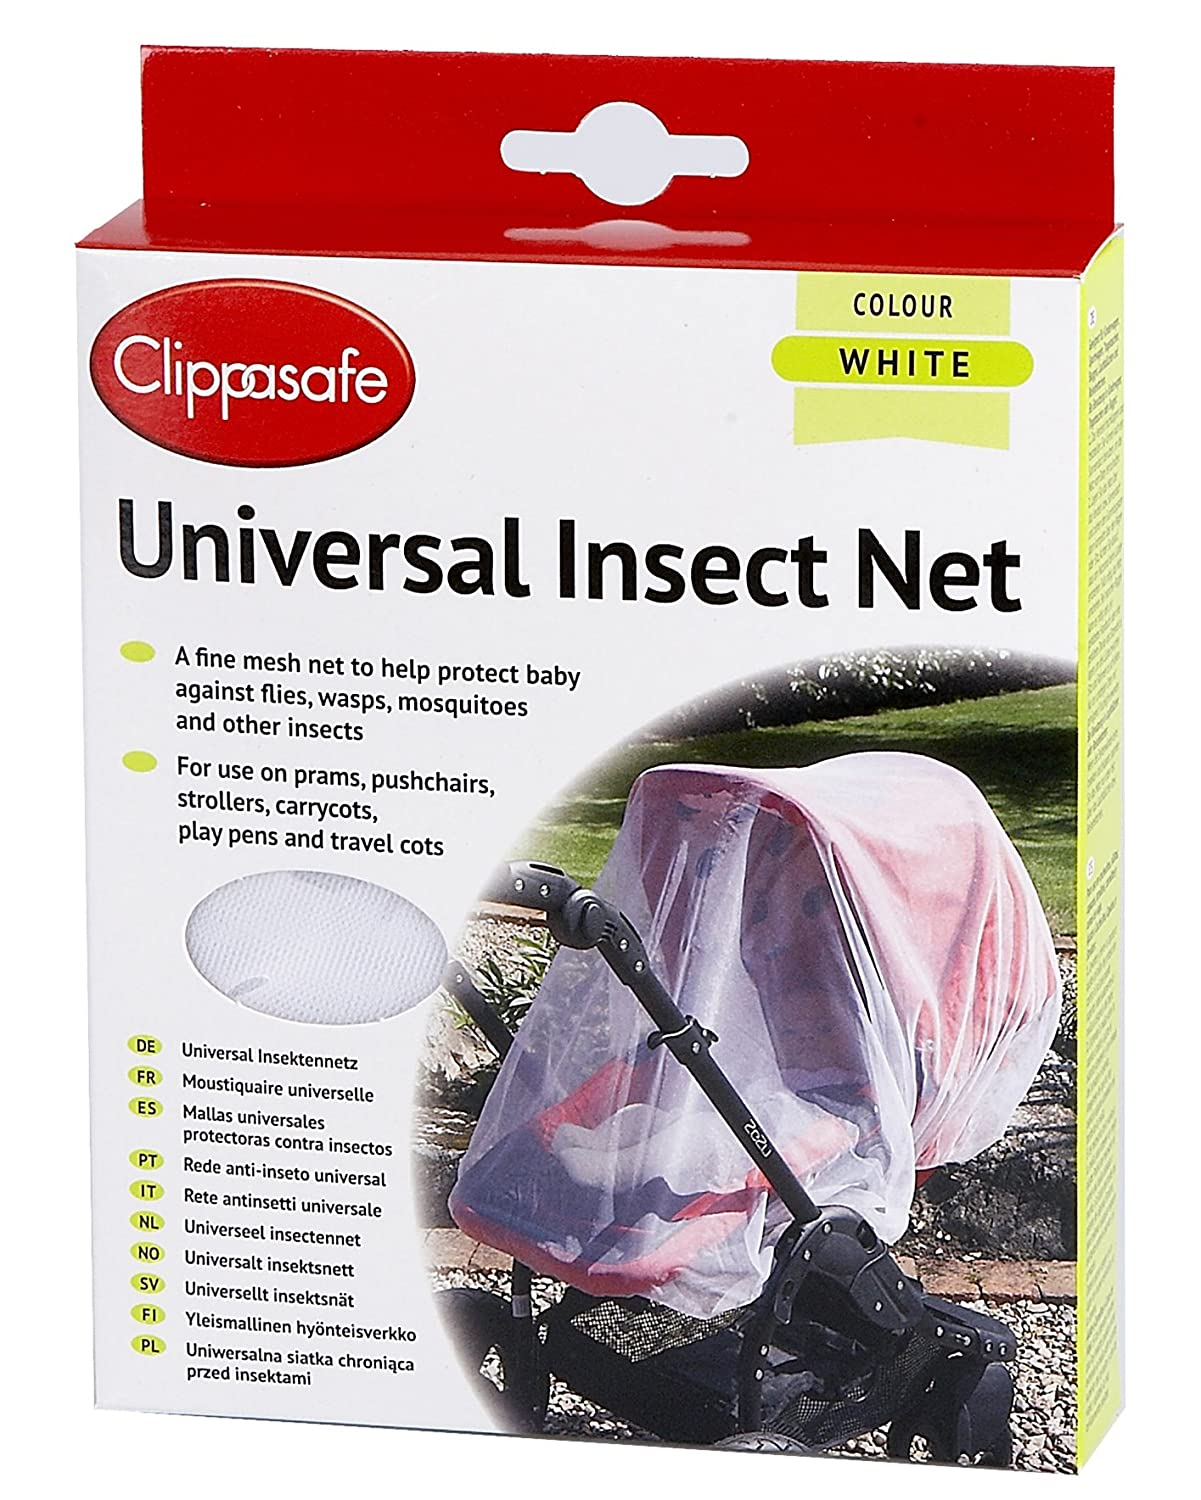 Clippasafe Pram & Pushchair Universal Insect Net (One Size, White) Clippasafe Ltd CL194 cot crib